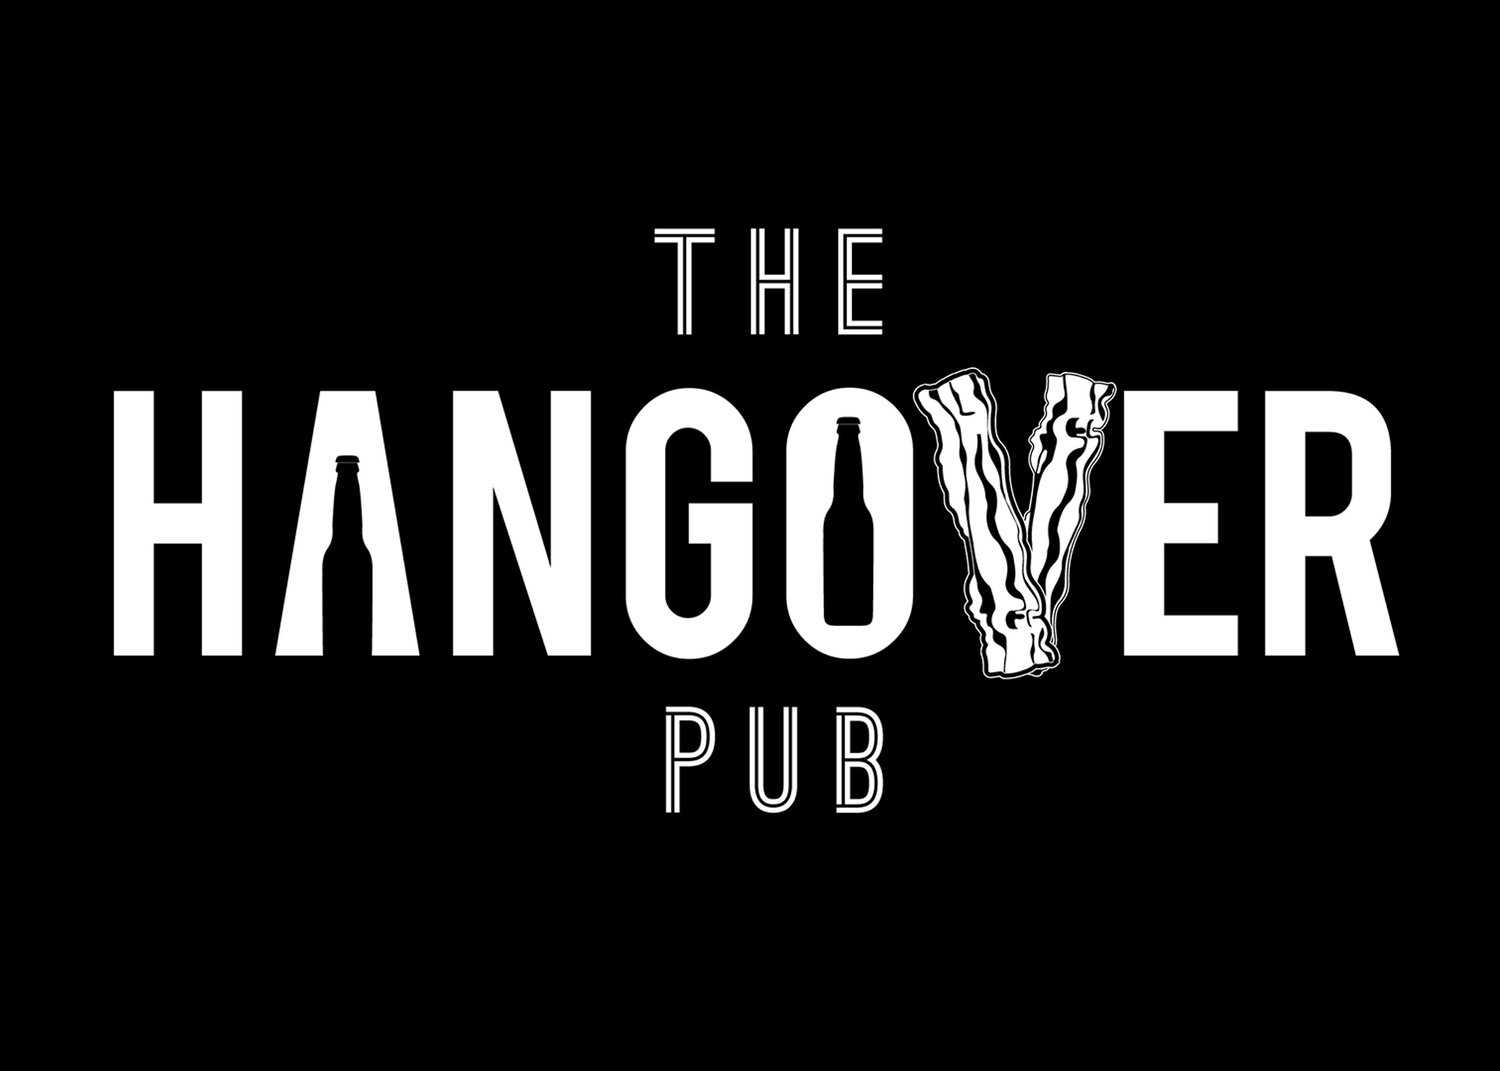 THE HANGOVER PUB